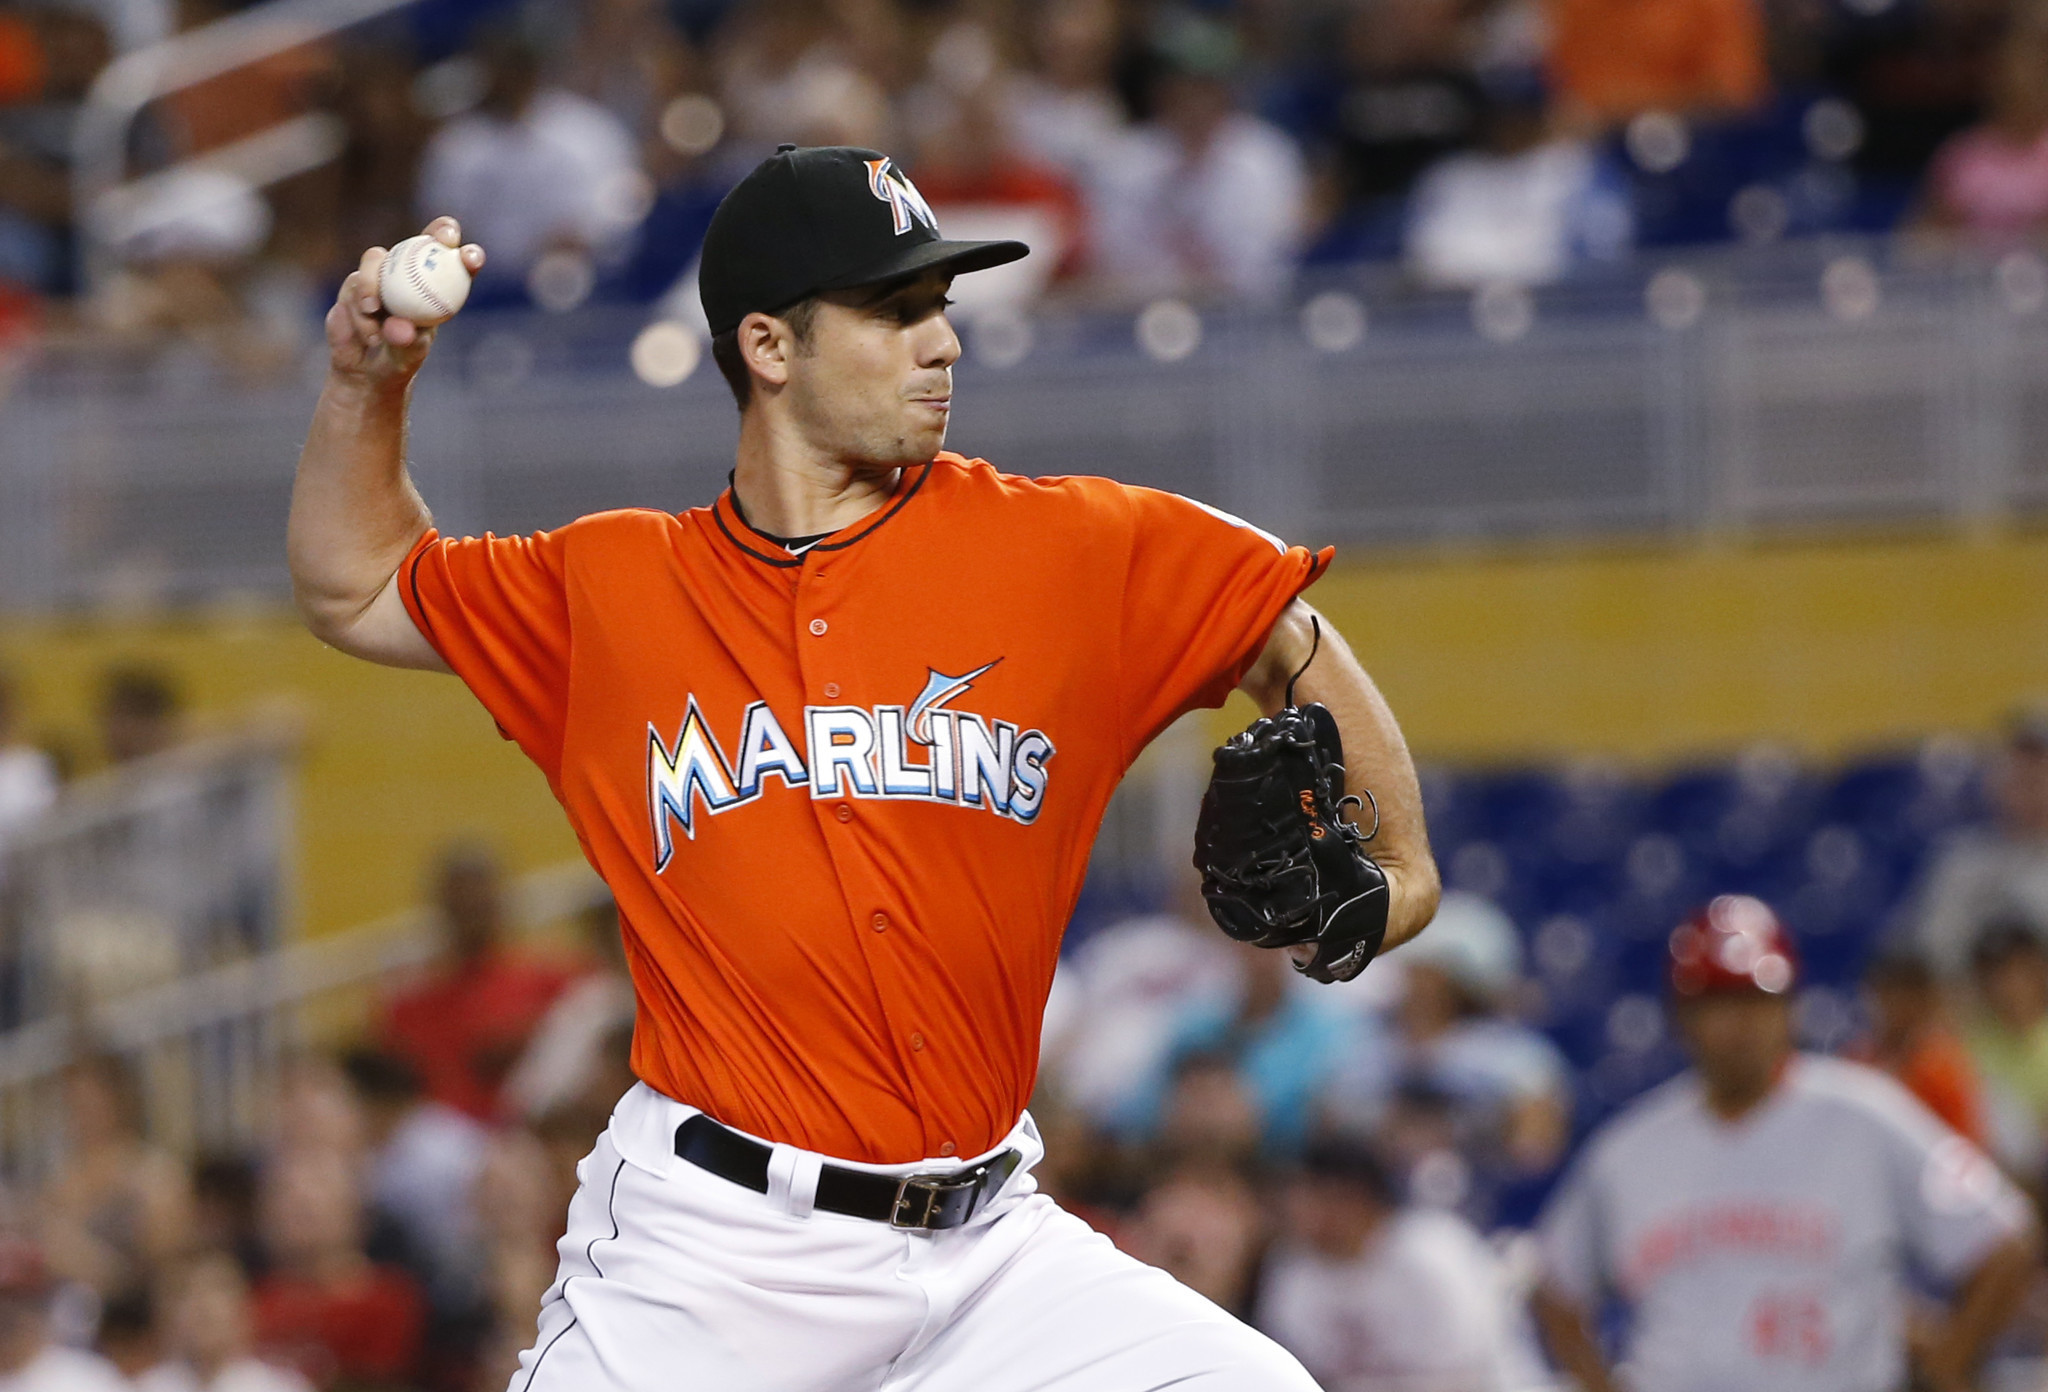 Fl-marlins-news-0905-20160904